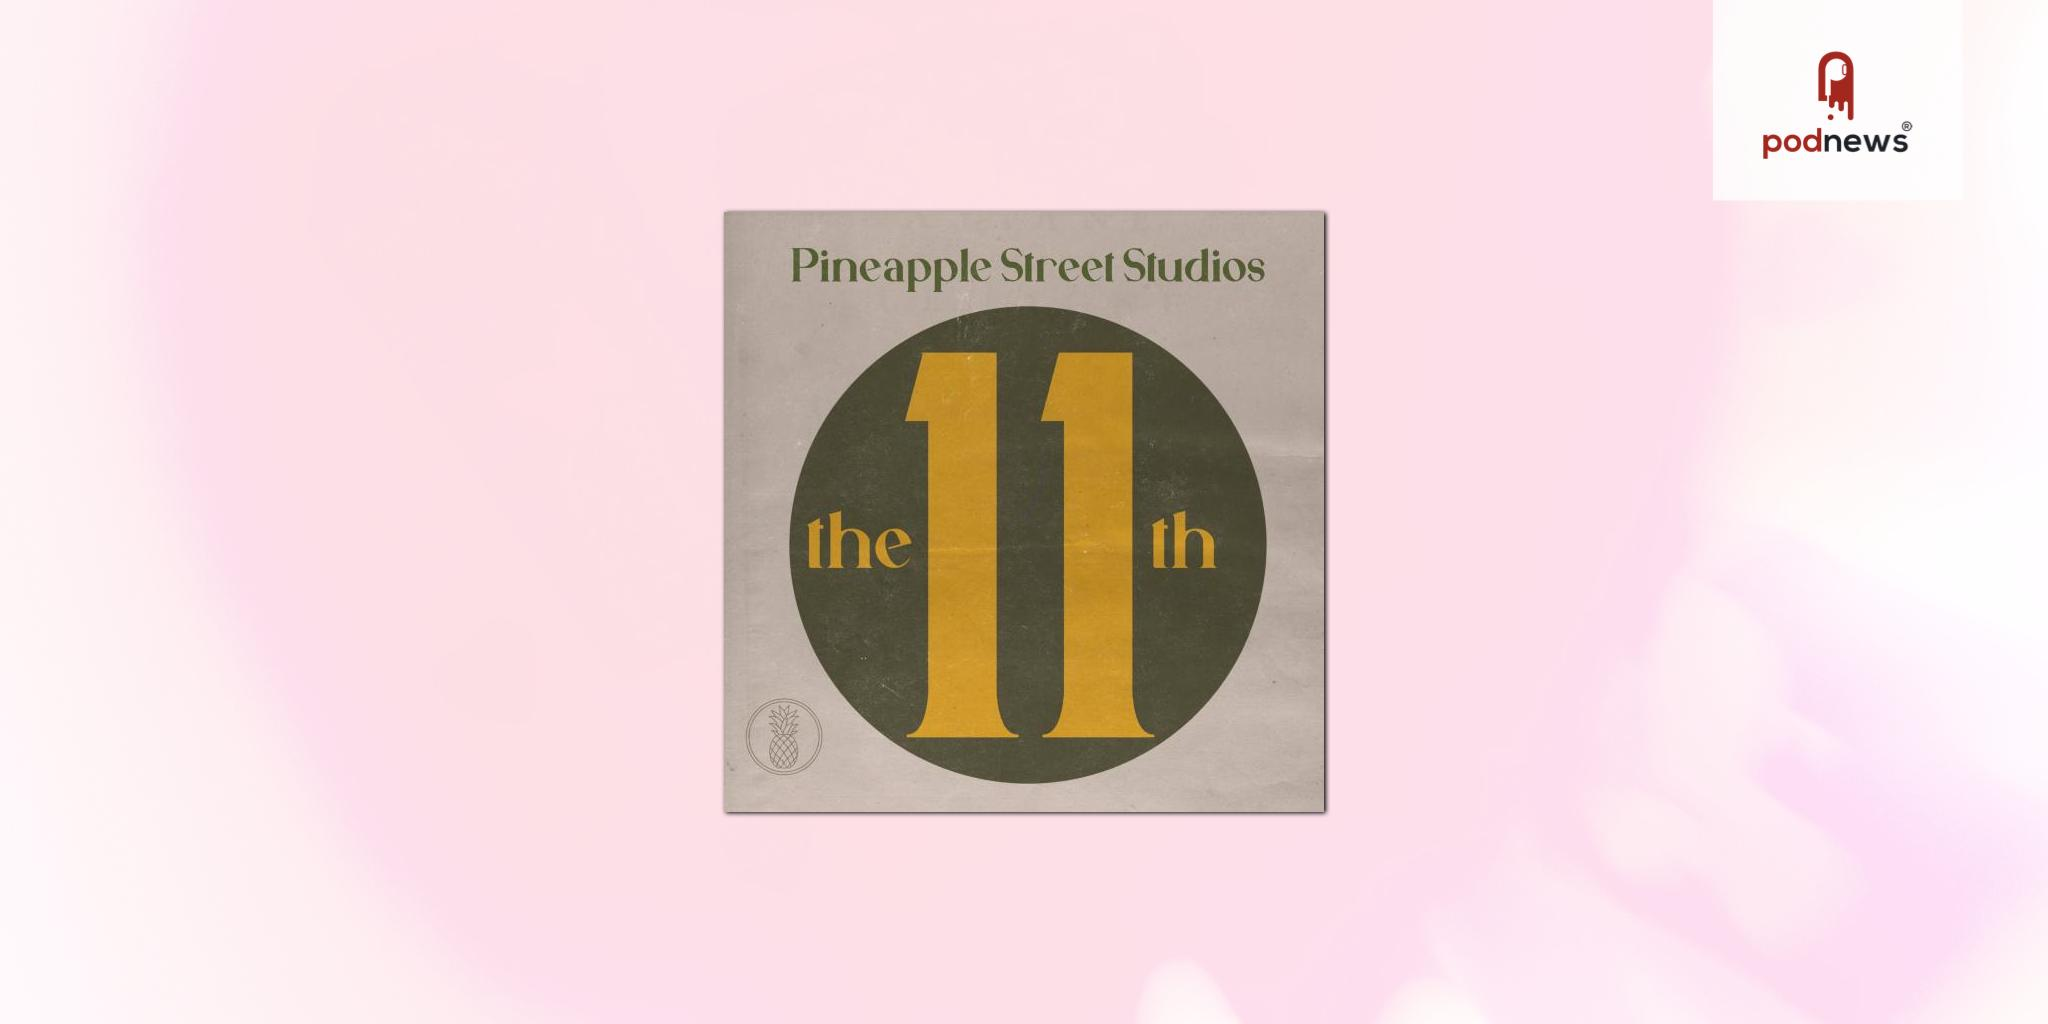 Pineapple Street Studios Introduces Innovative Podcast Format with Launch of Monthly Series The 11th